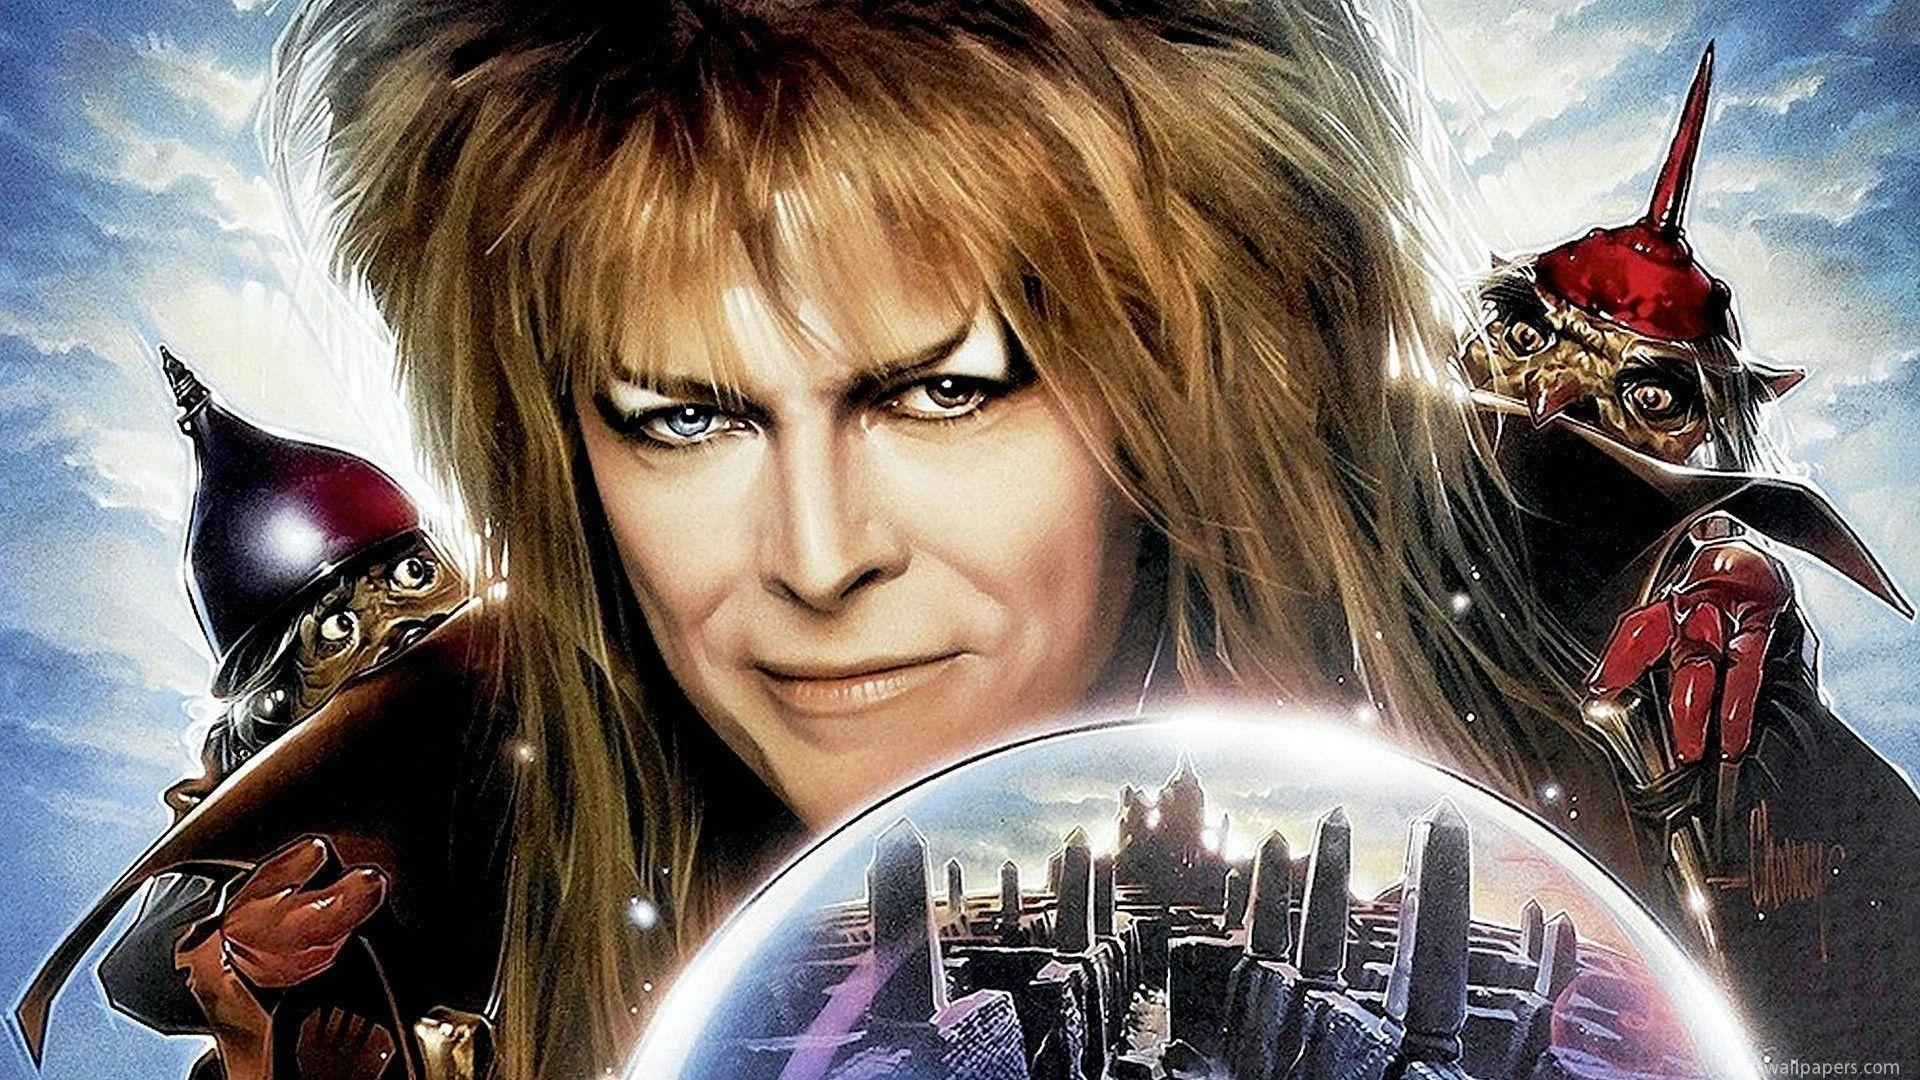 Jareth - David Bowie Wallpaper (34011348) - Fanpop